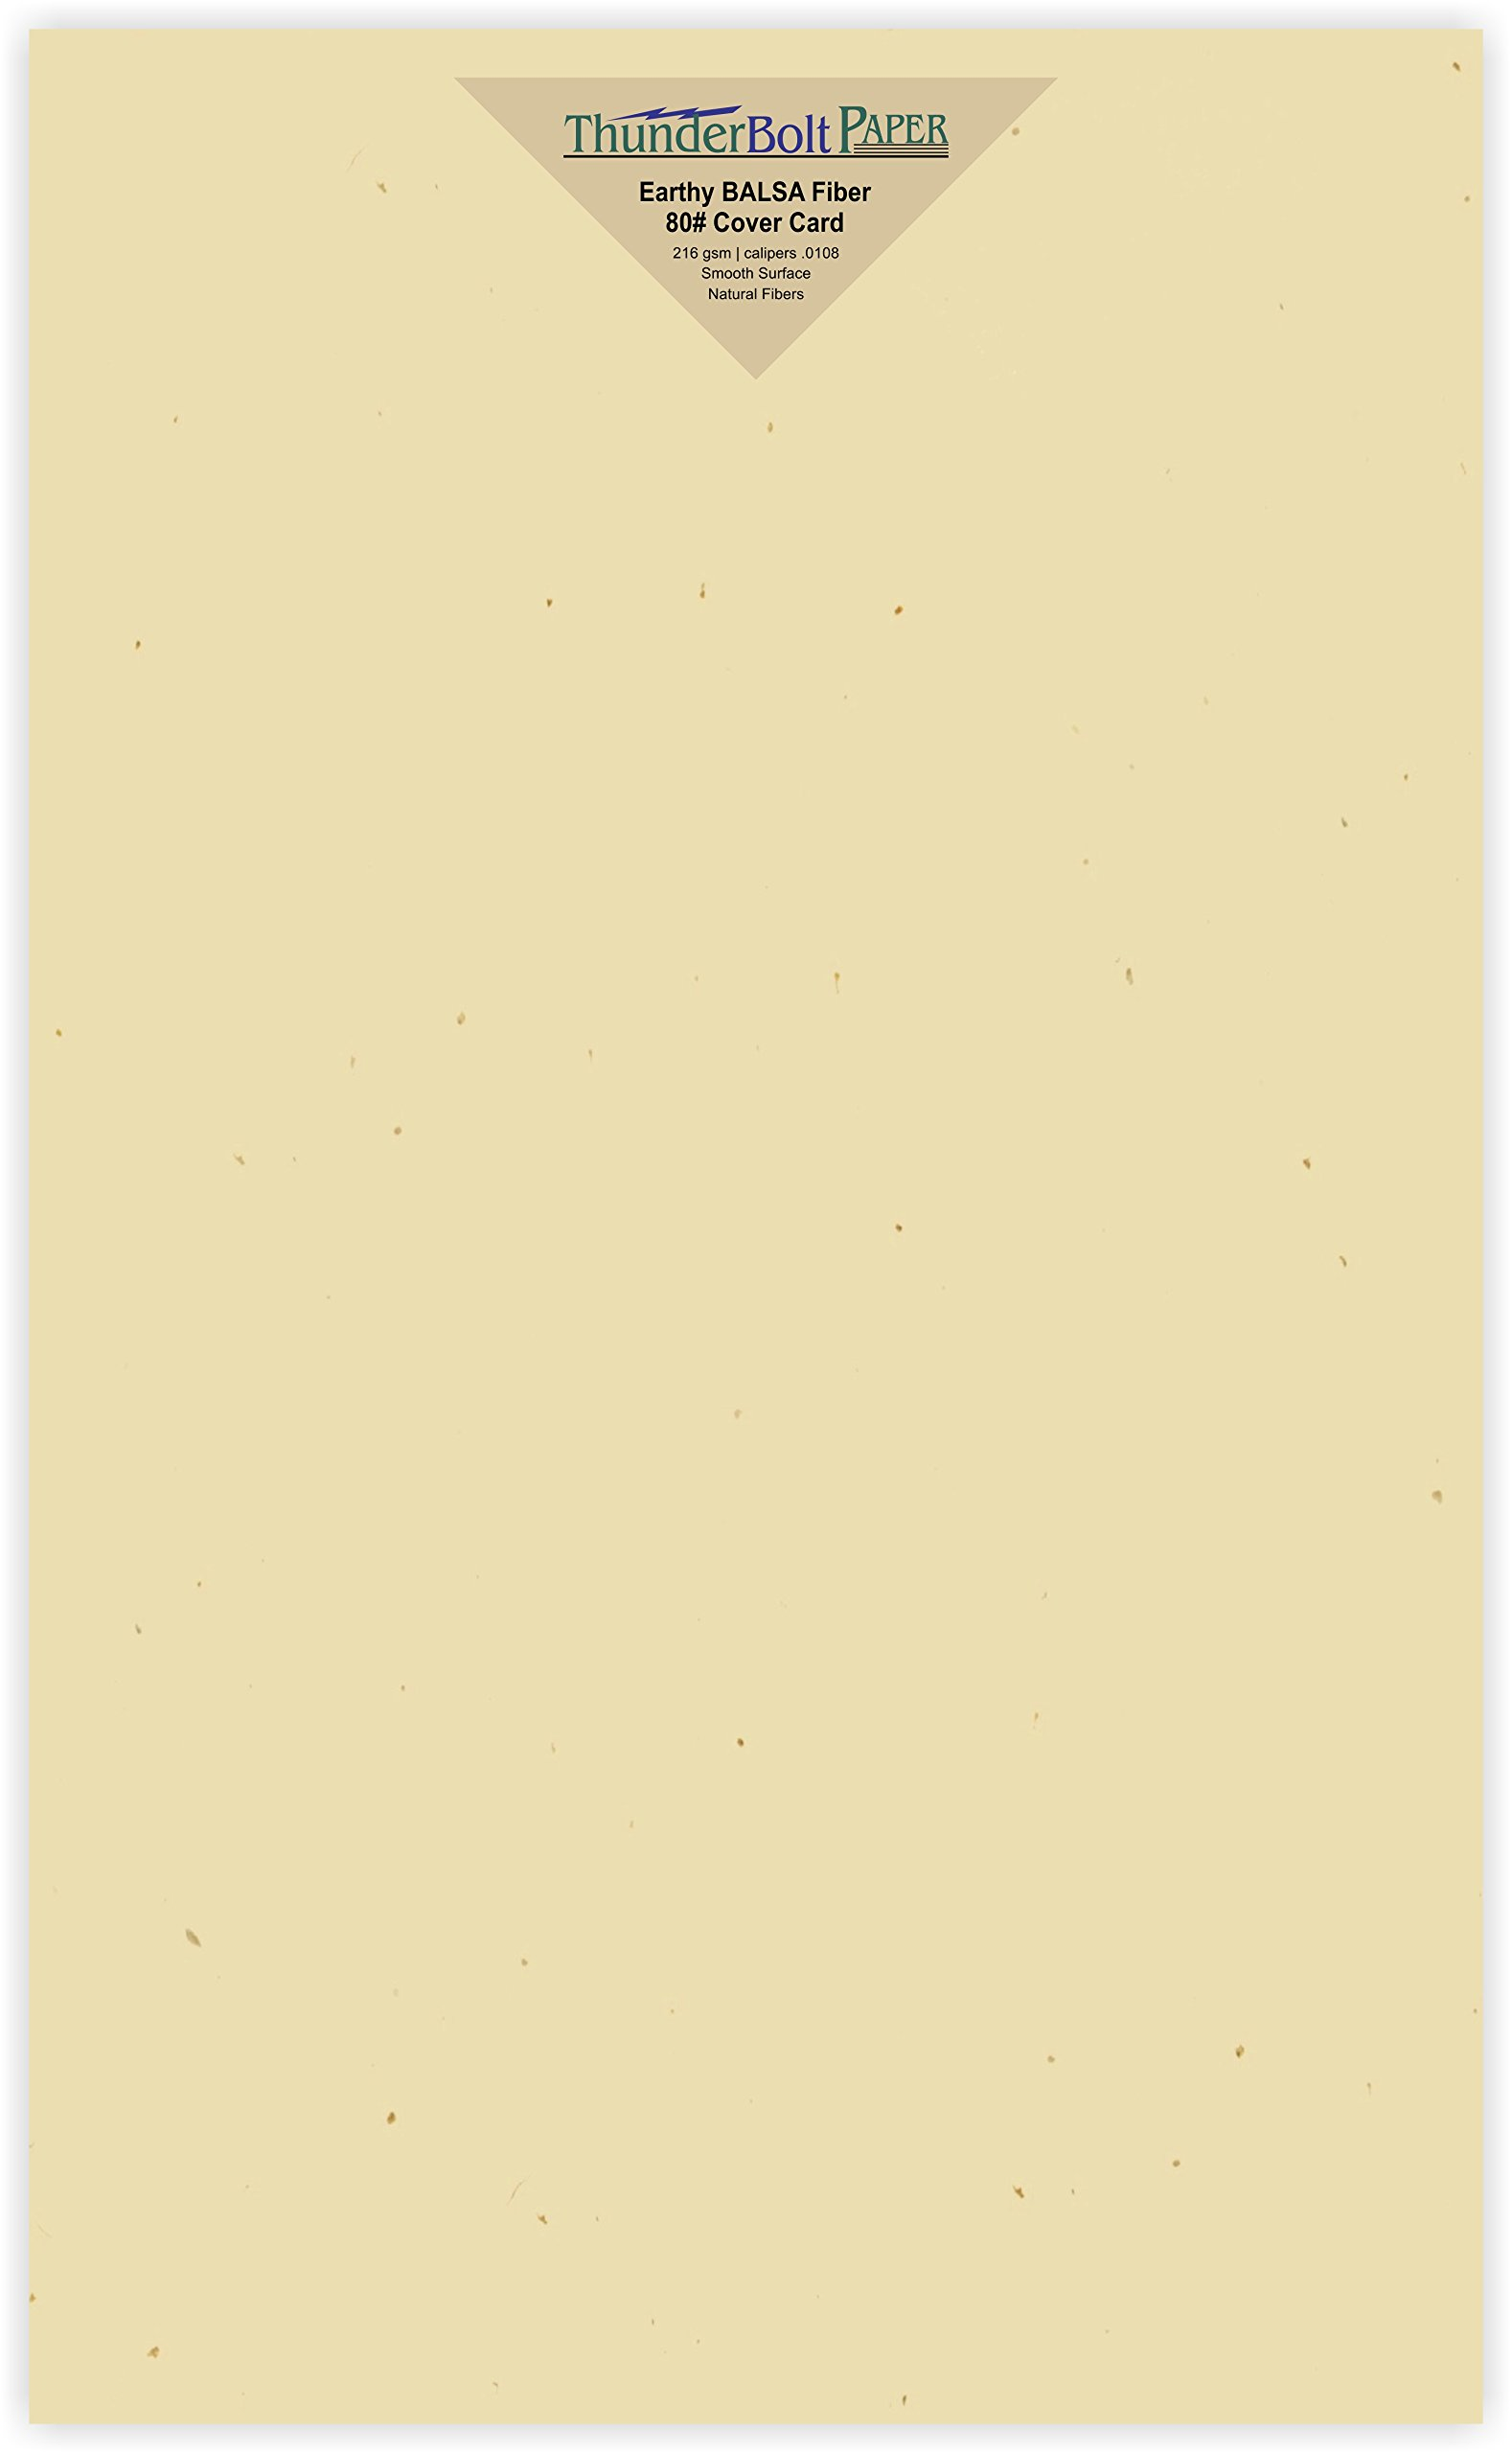 150 Earthy Balsa Fiber Cover Sheets - 80# (80 lb/pound) Card Weight - 8.5'' X 14'' (8.5X14 Inches) Legal|Menu Size - Fine Paper in Creamy Tan|Beige Color for Quality Results by ThunderBolt Paper